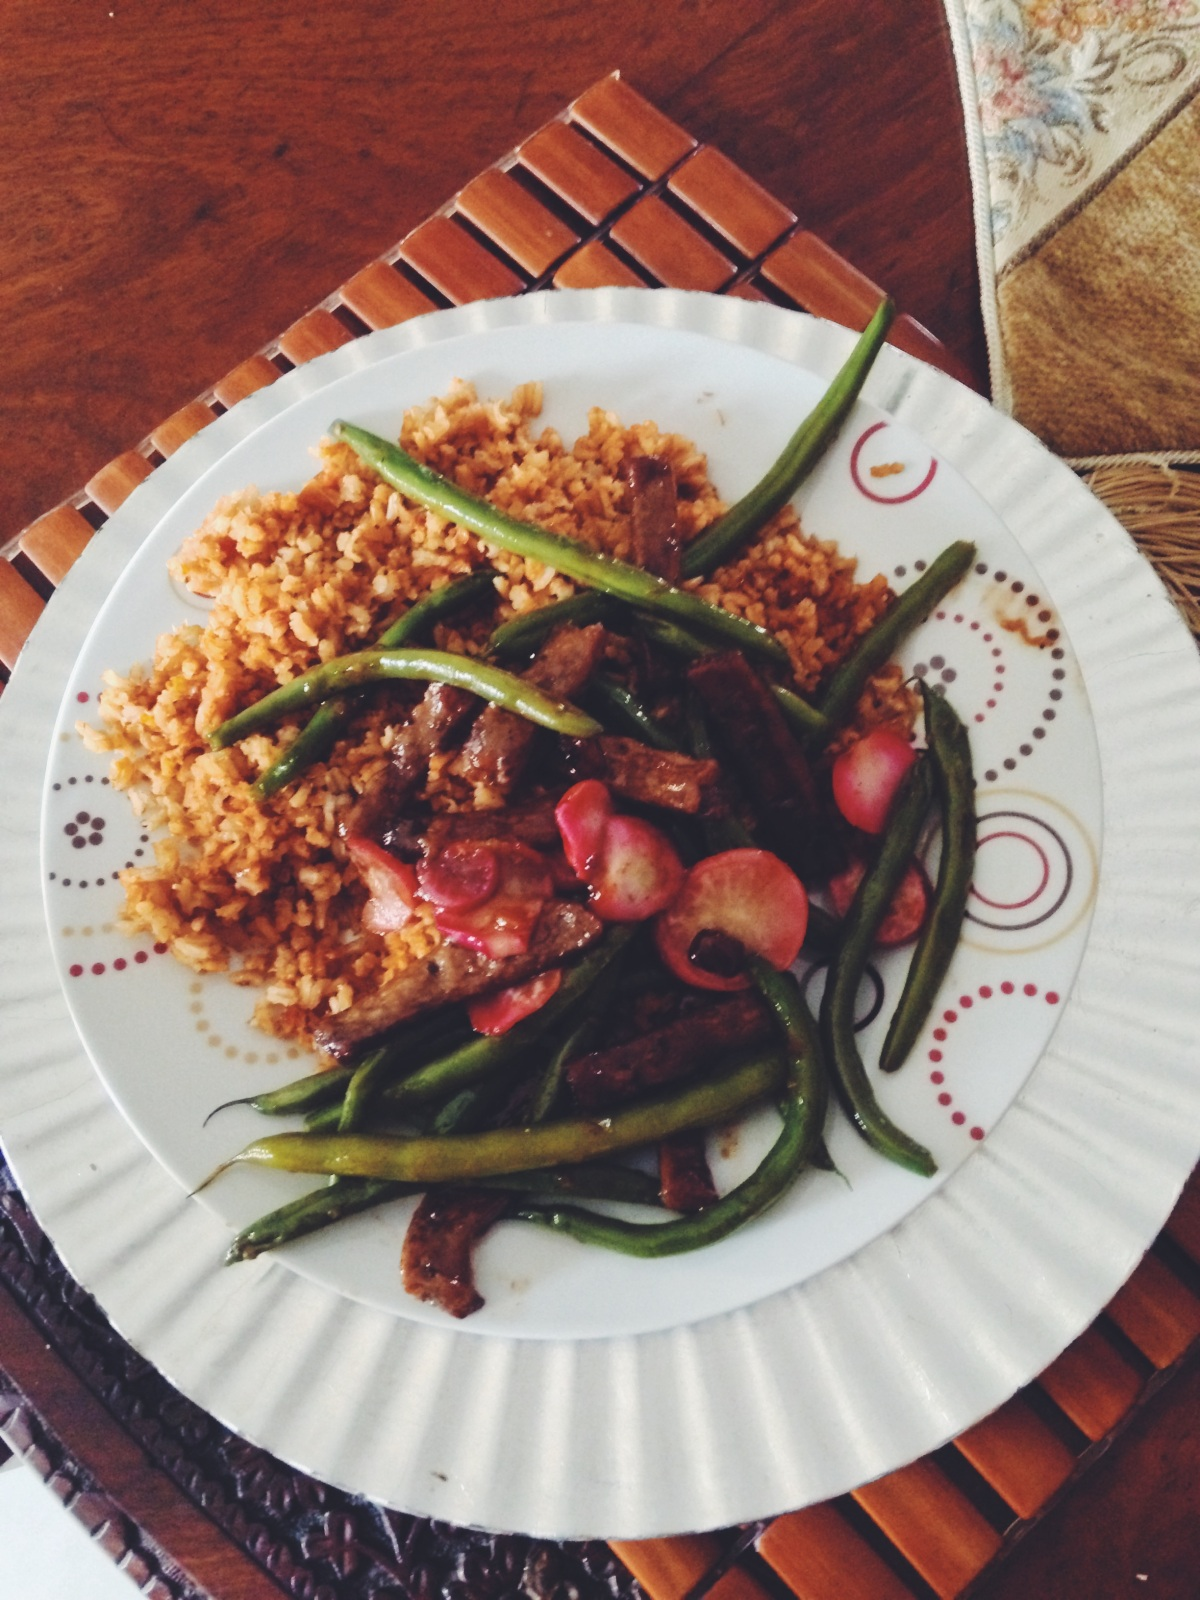 Green beans and radishes on a bed of spicy brown rice and Fry's thick cut chunky strips